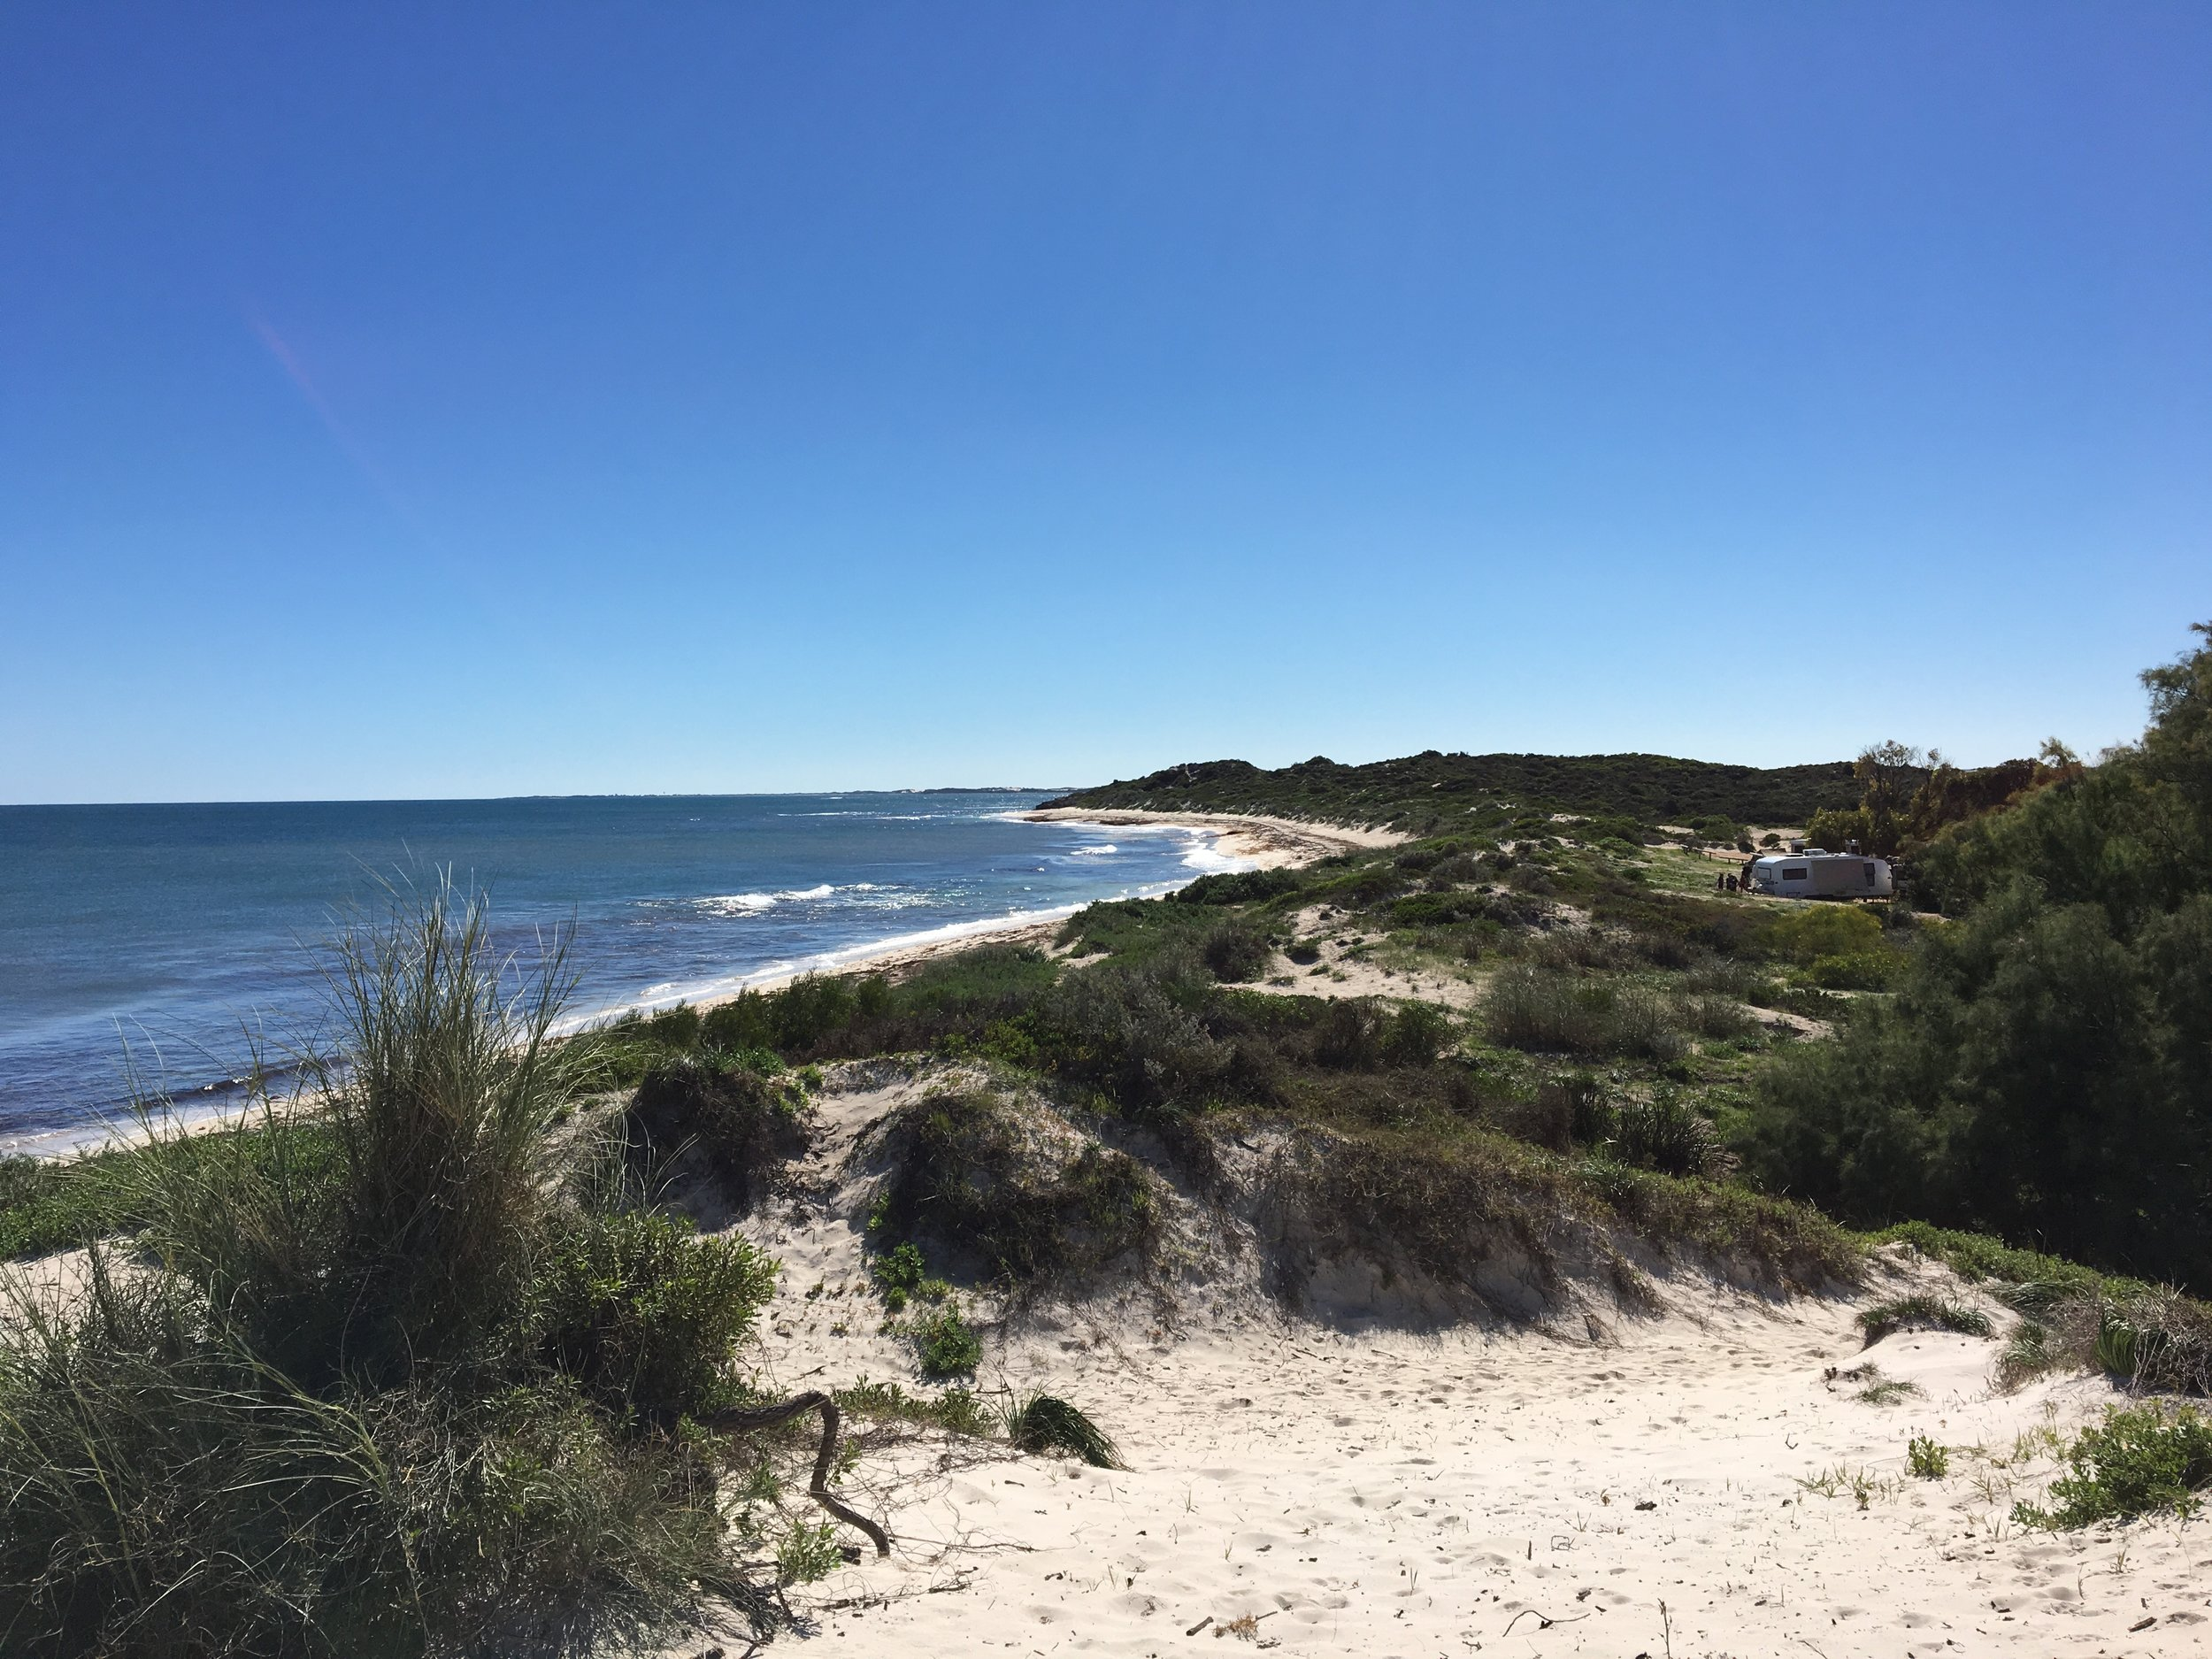 Sand dunes and dreamy beaches